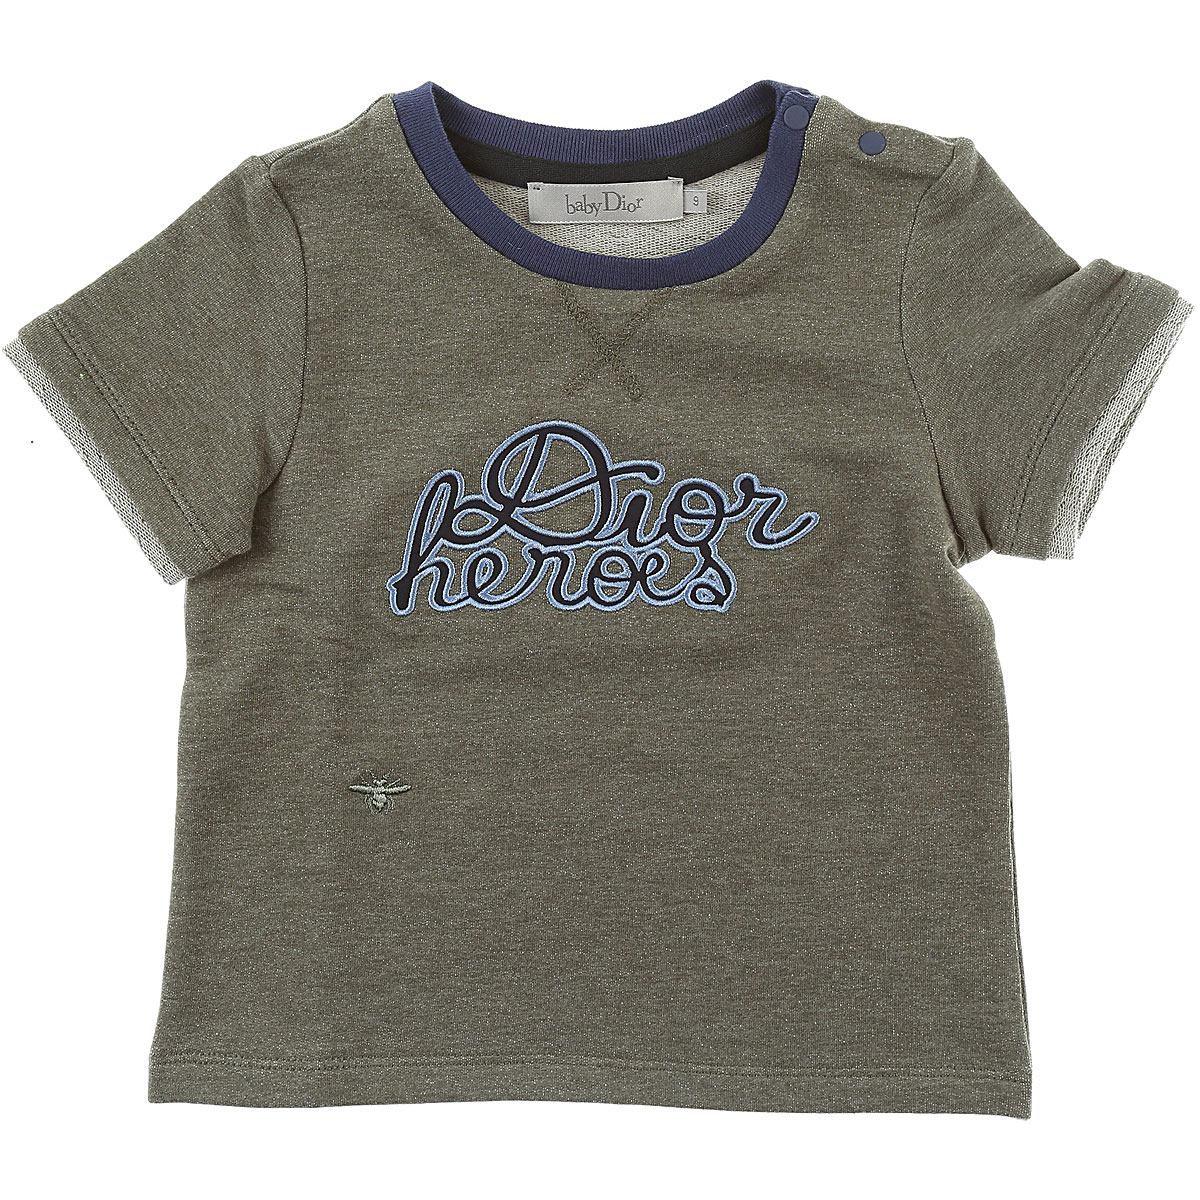 Image of Baby Dior Baby T-Shirt for Boys, Green, Cotton, 2017, 12M 18M 2Y 3Y 6M 9M